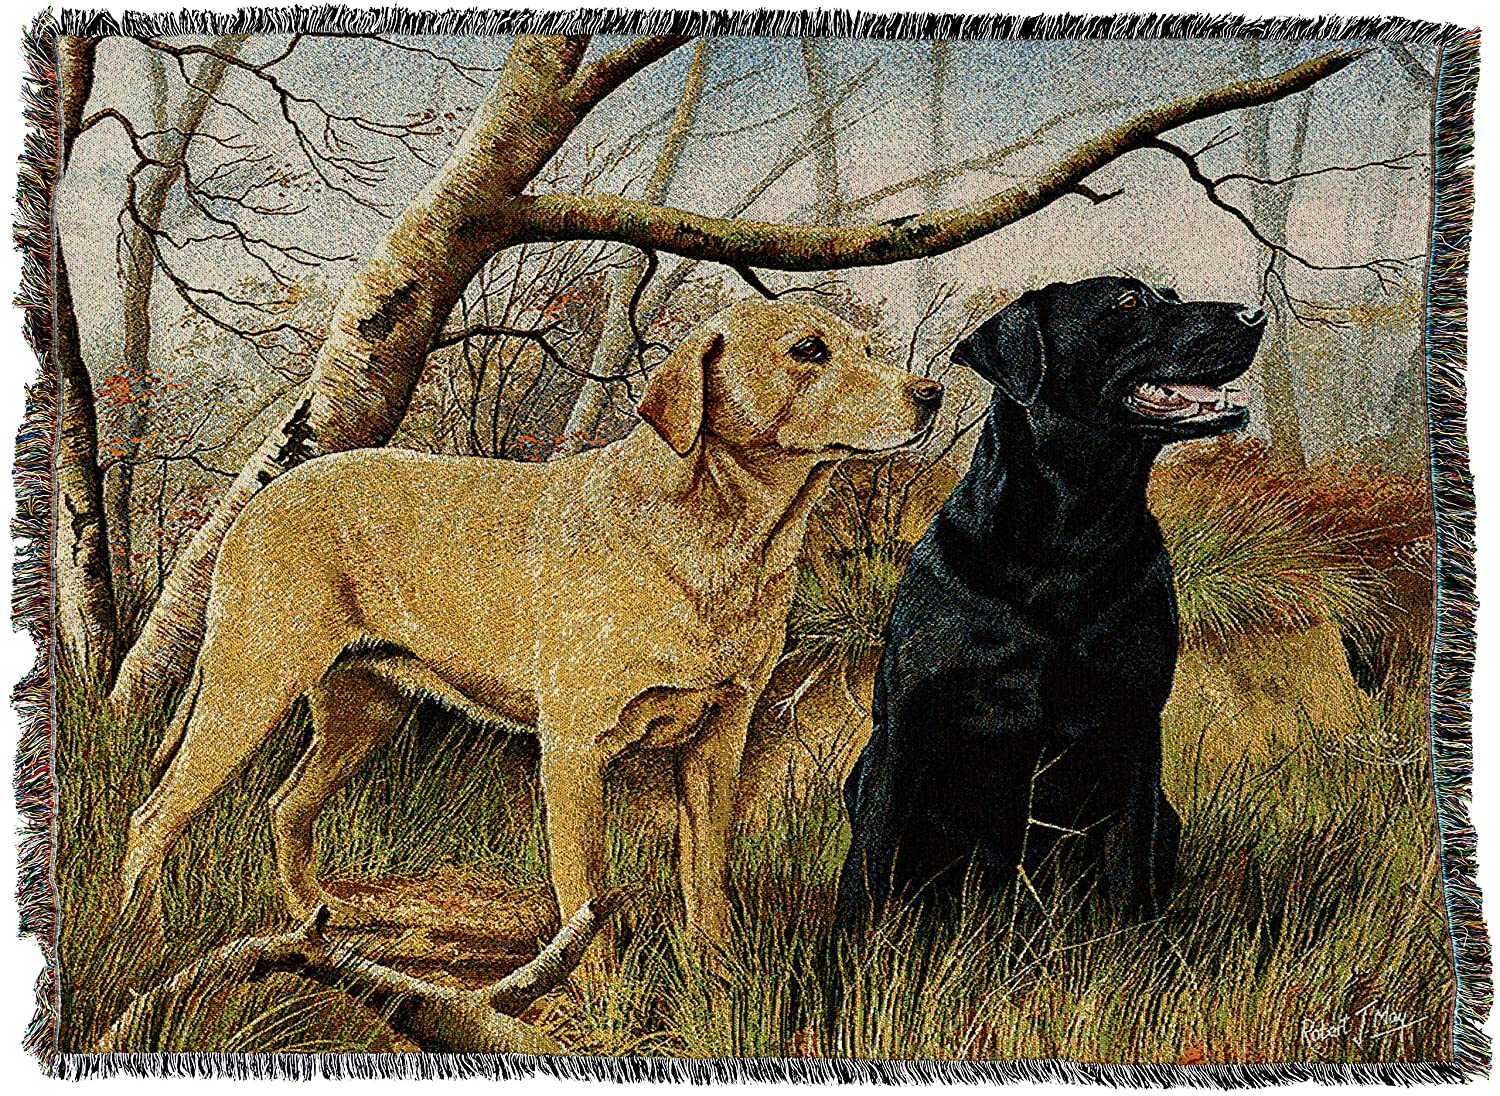 Pure Country Weavers - Labrador Retrievers Woven Tapestry Throw Blanket with Fringe Cotton USA